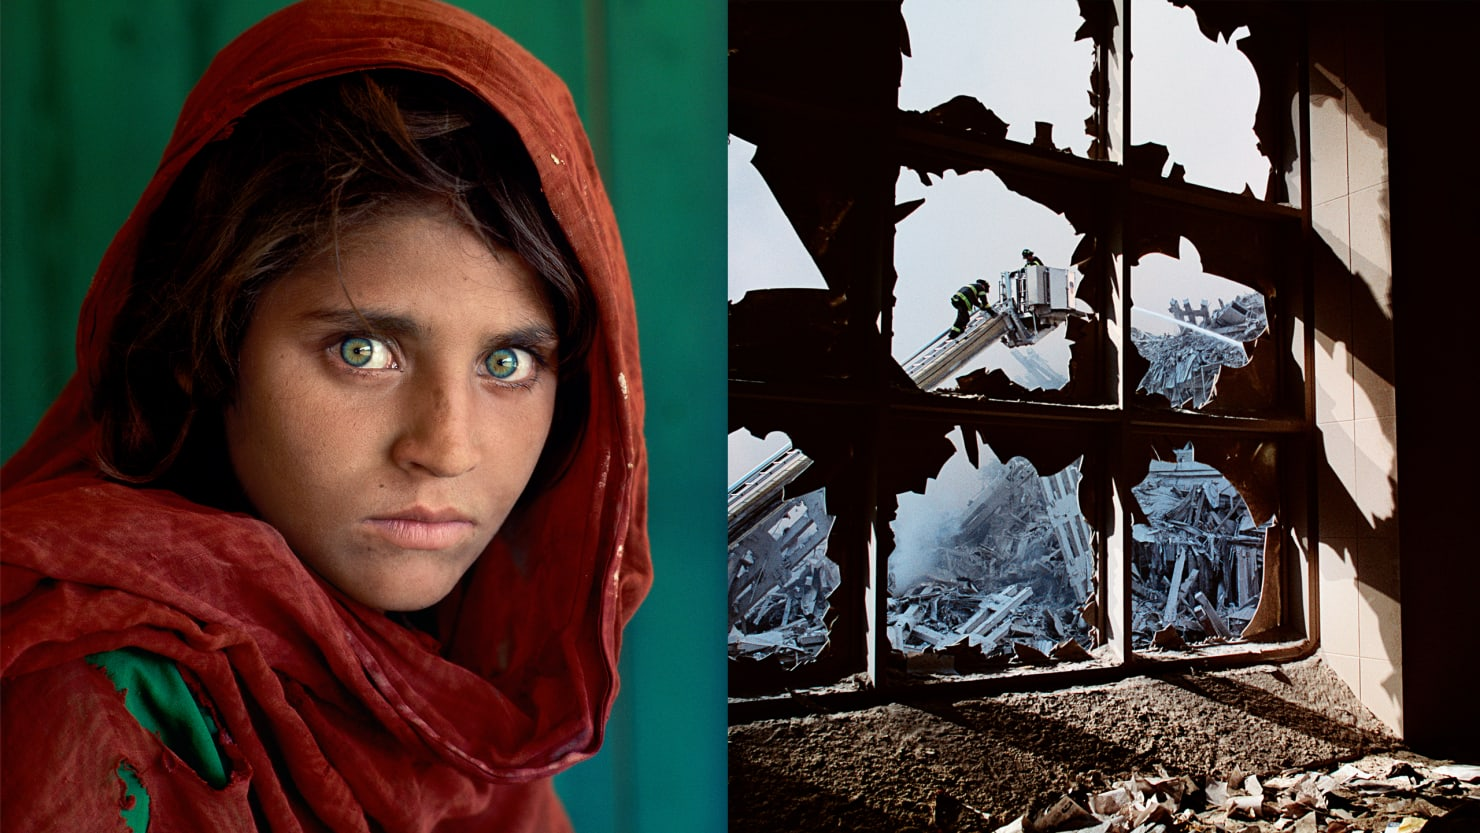 From Afghan Girl To Ground Zero The World Through Steve